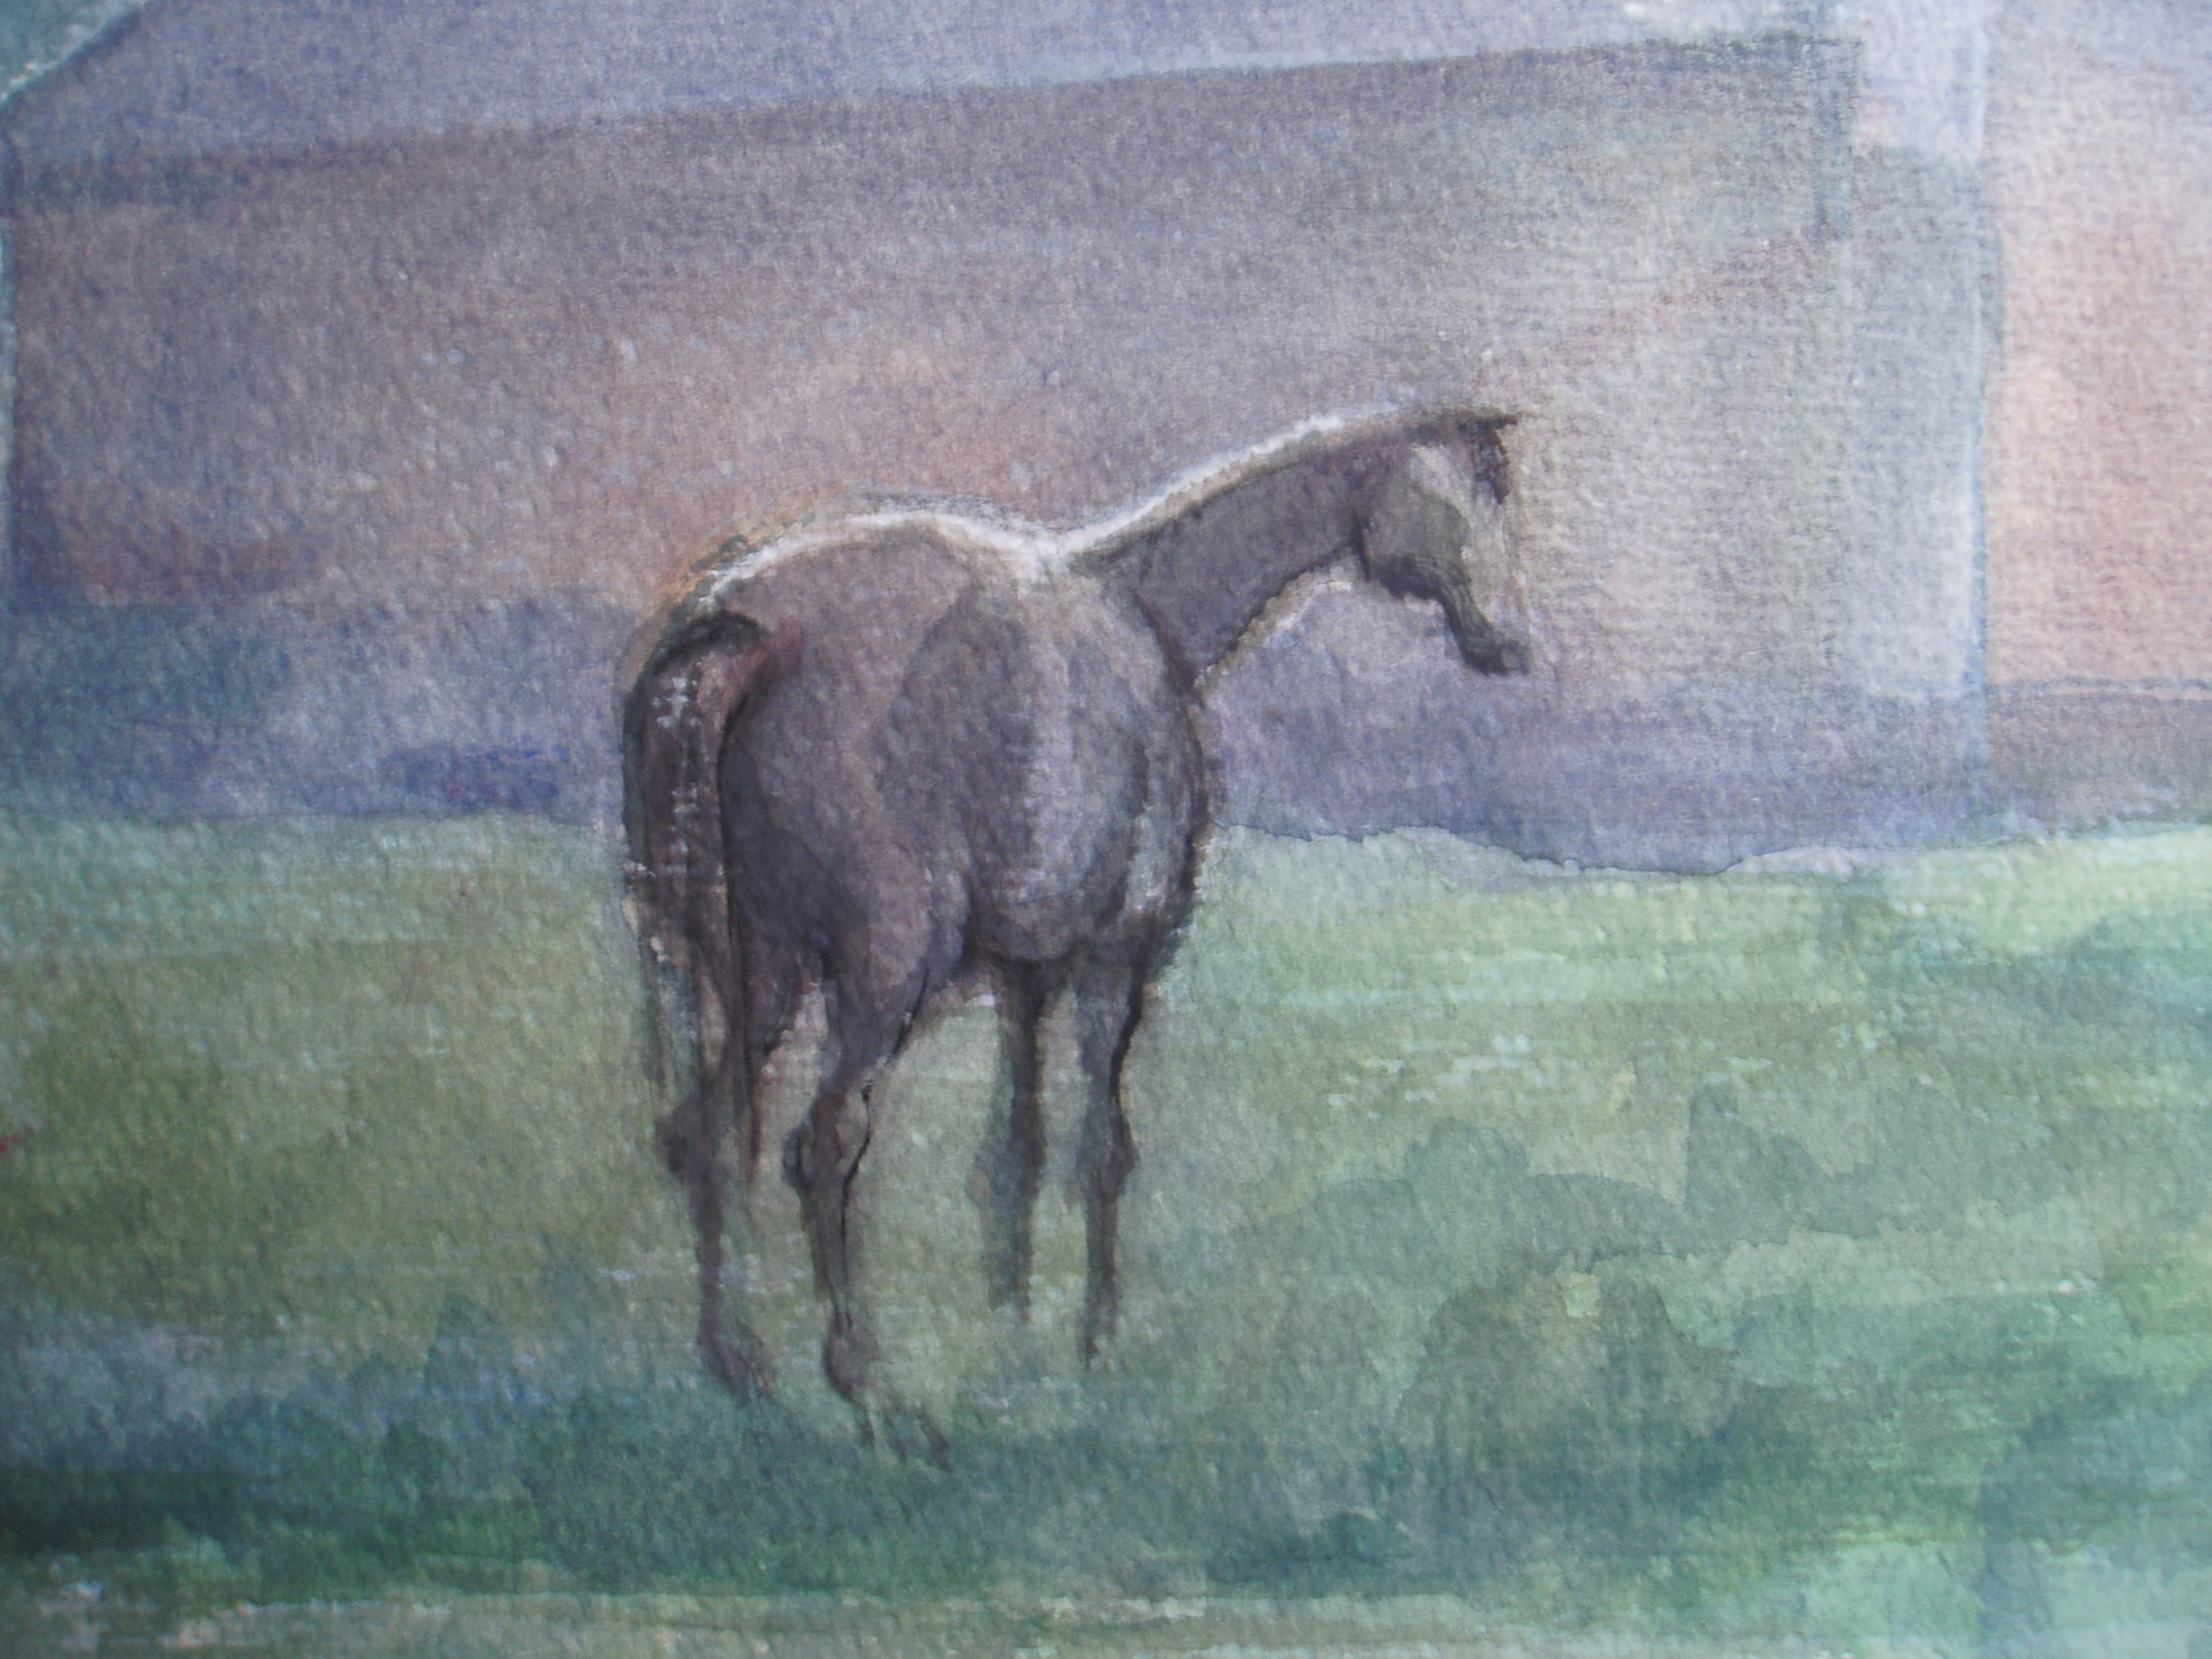 1robruigrokhorseatfarmhouse1980watercolouronpaper014.jpg